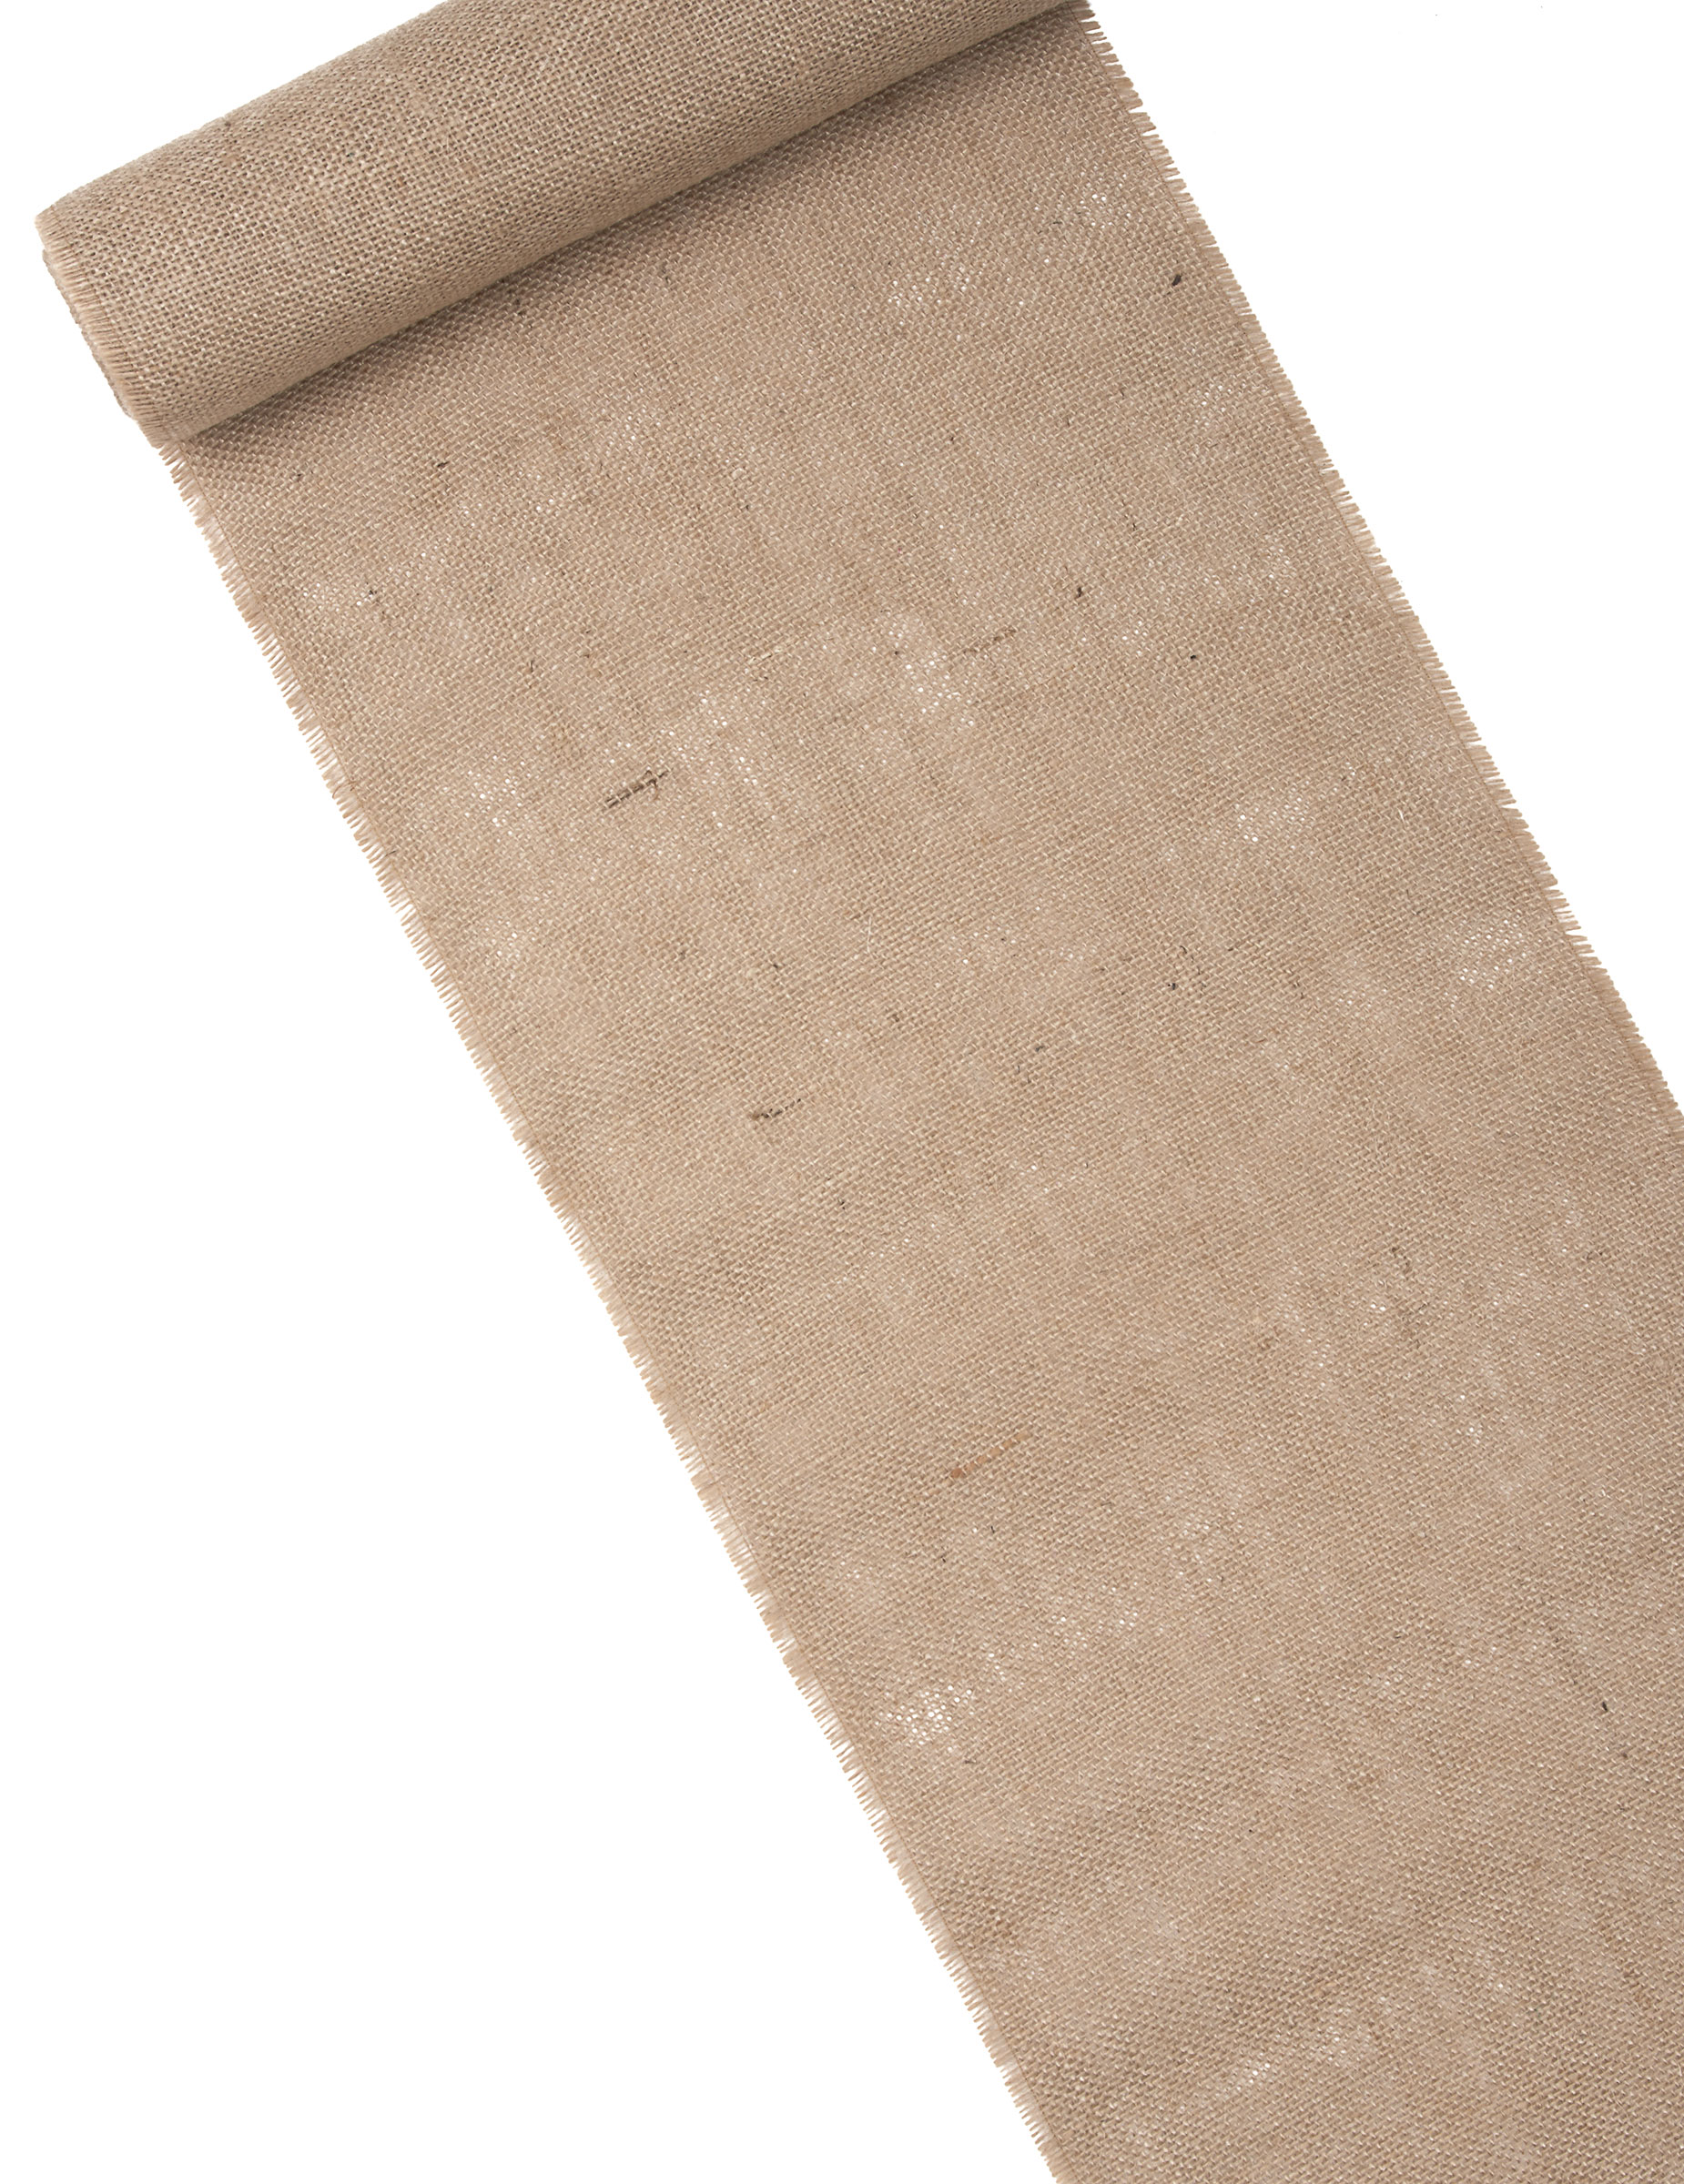 Chemin de table fa on toile de jute naturelle 5m - Chemin de table toile de jute pas cher ...